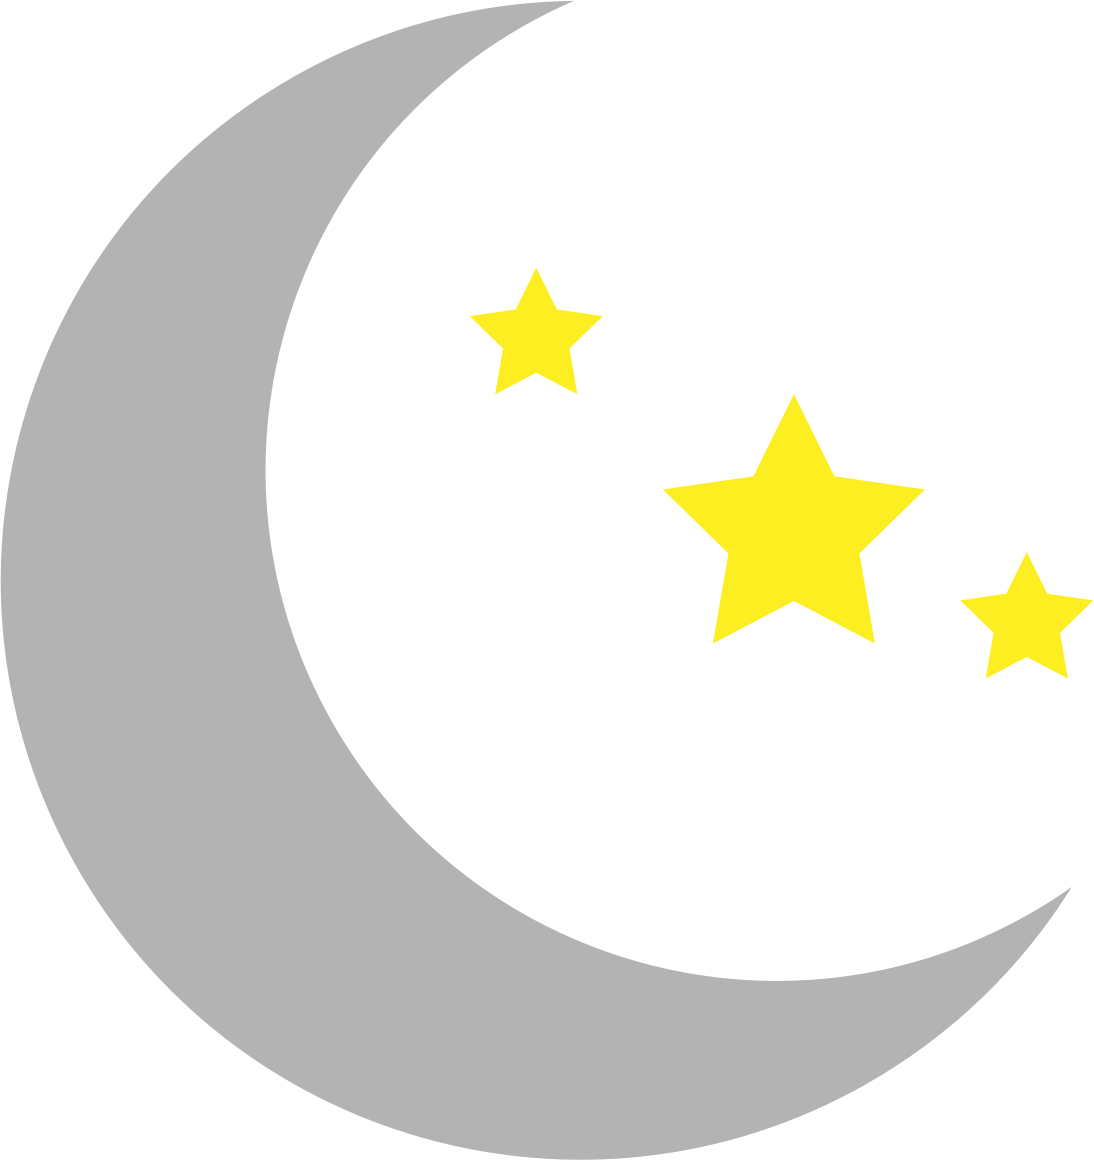 Free clipart of moon and stars svg free Moon And Stars Clipart | Free download best Moon And Stars Clipart ... svg free